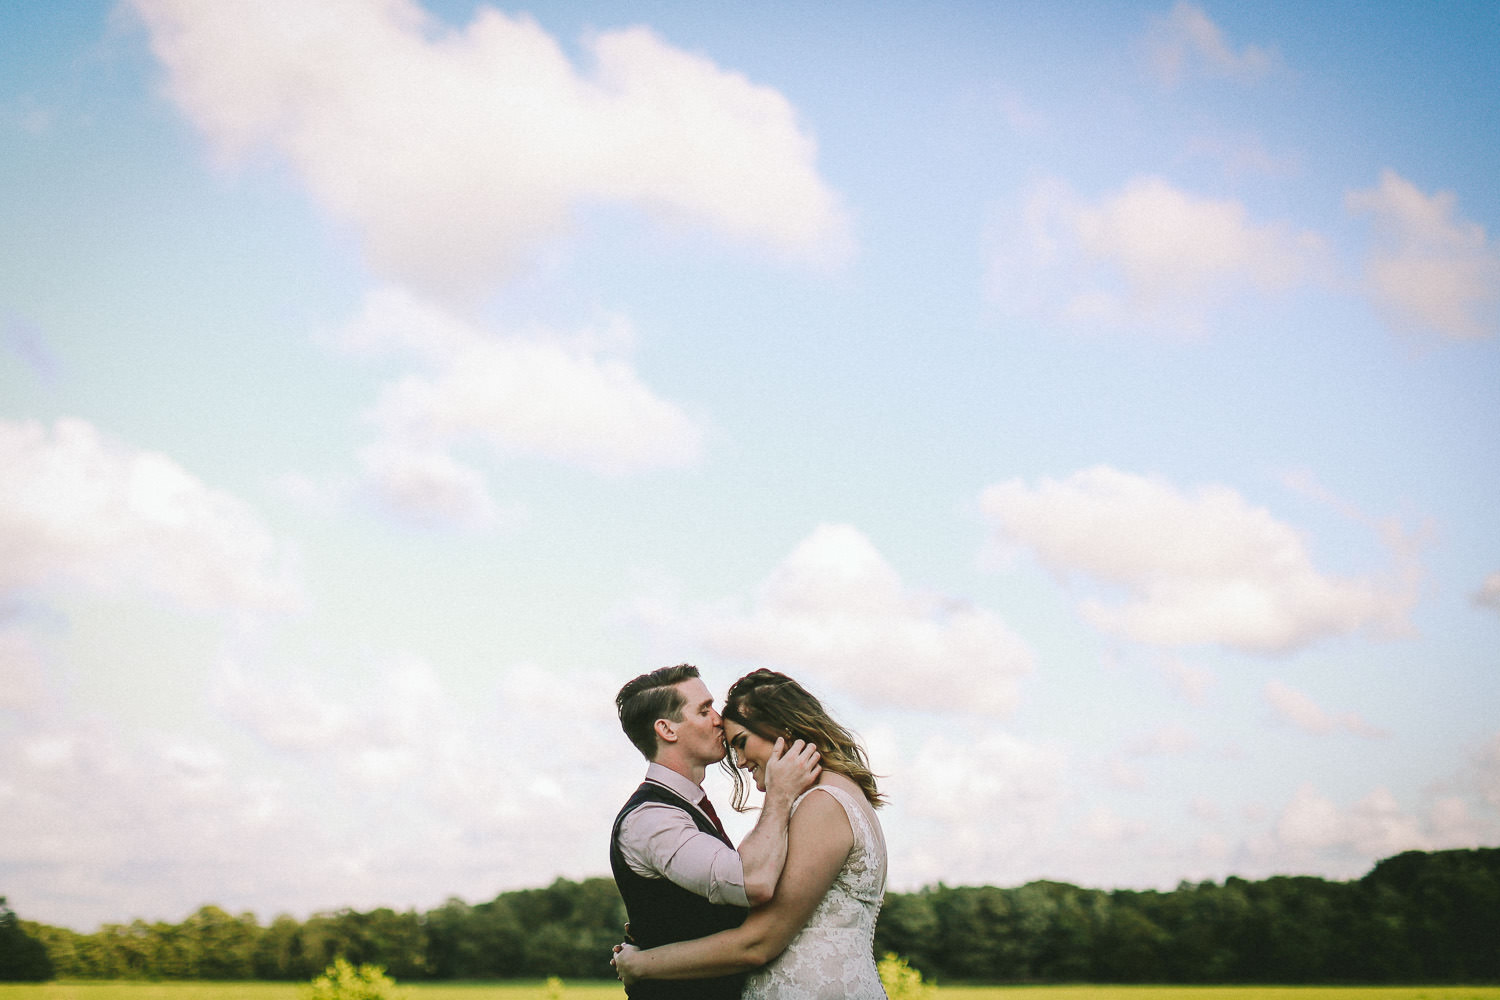 Groom kissing bride on head with blue skies Rustic wedding at Meols Hall Southport